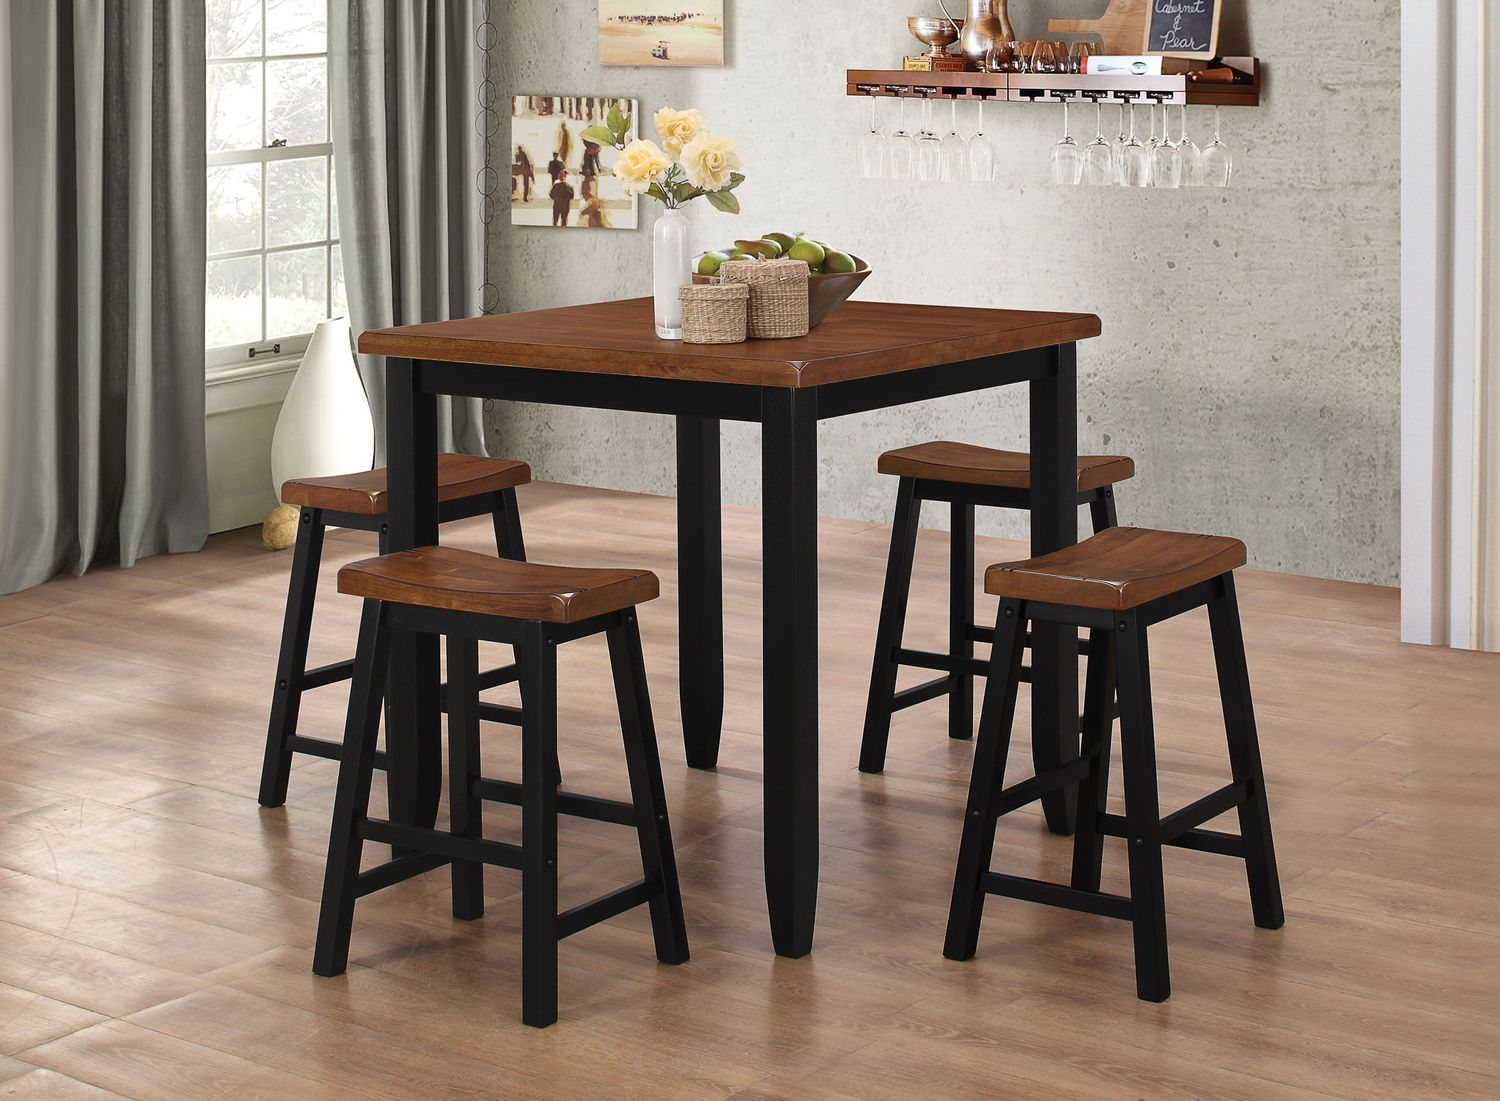 Solid Construction And Casual Contemporary Styling Make The Emmerdale Dining Set A Stylish And Practical Addition Pub Table Sets Kitchen Dining Sets Pub Table